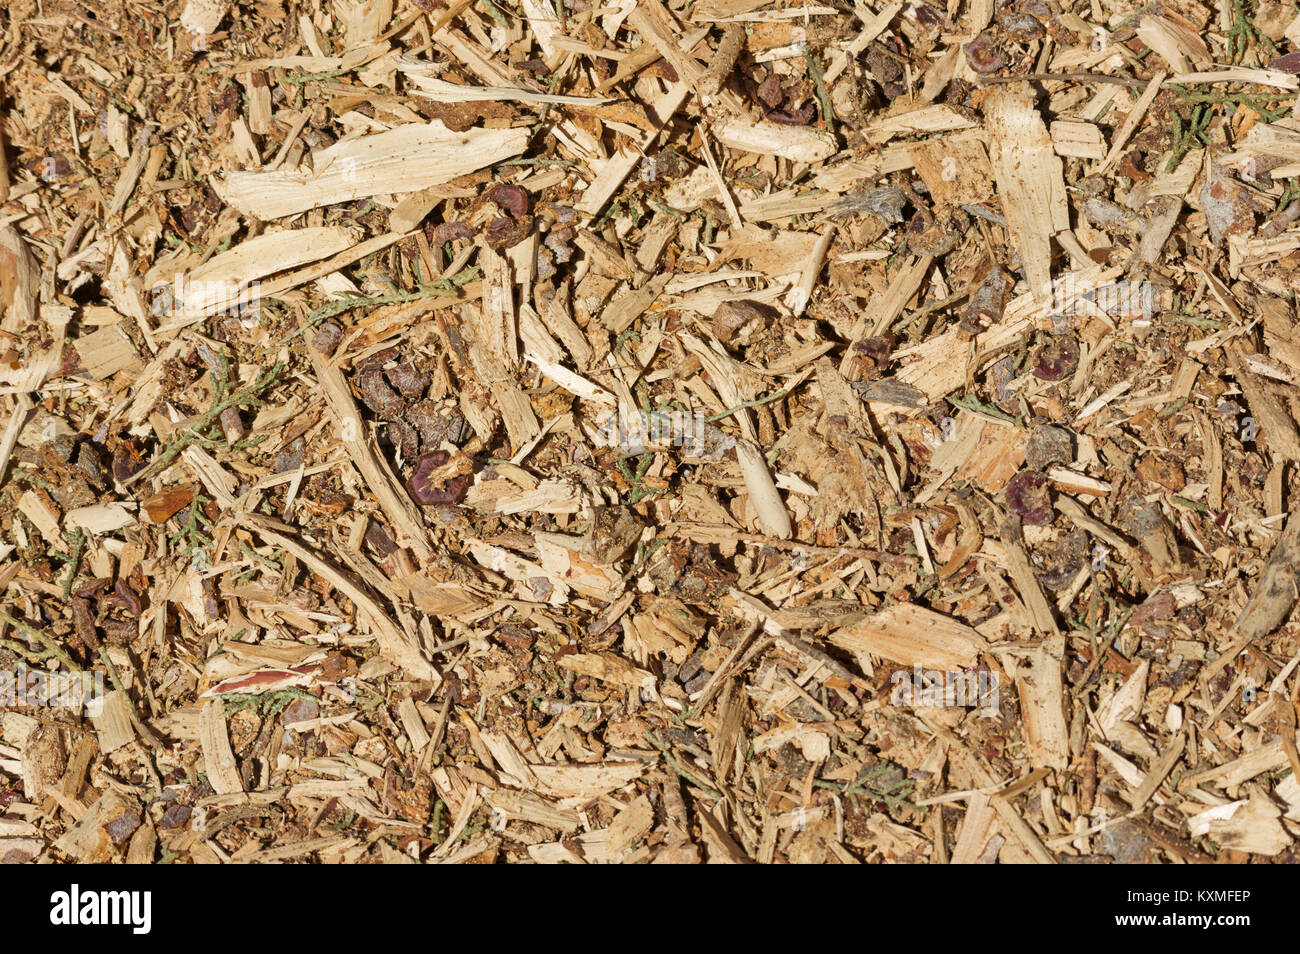 organic mulch background with wood chips bark and leaves Stock Photo